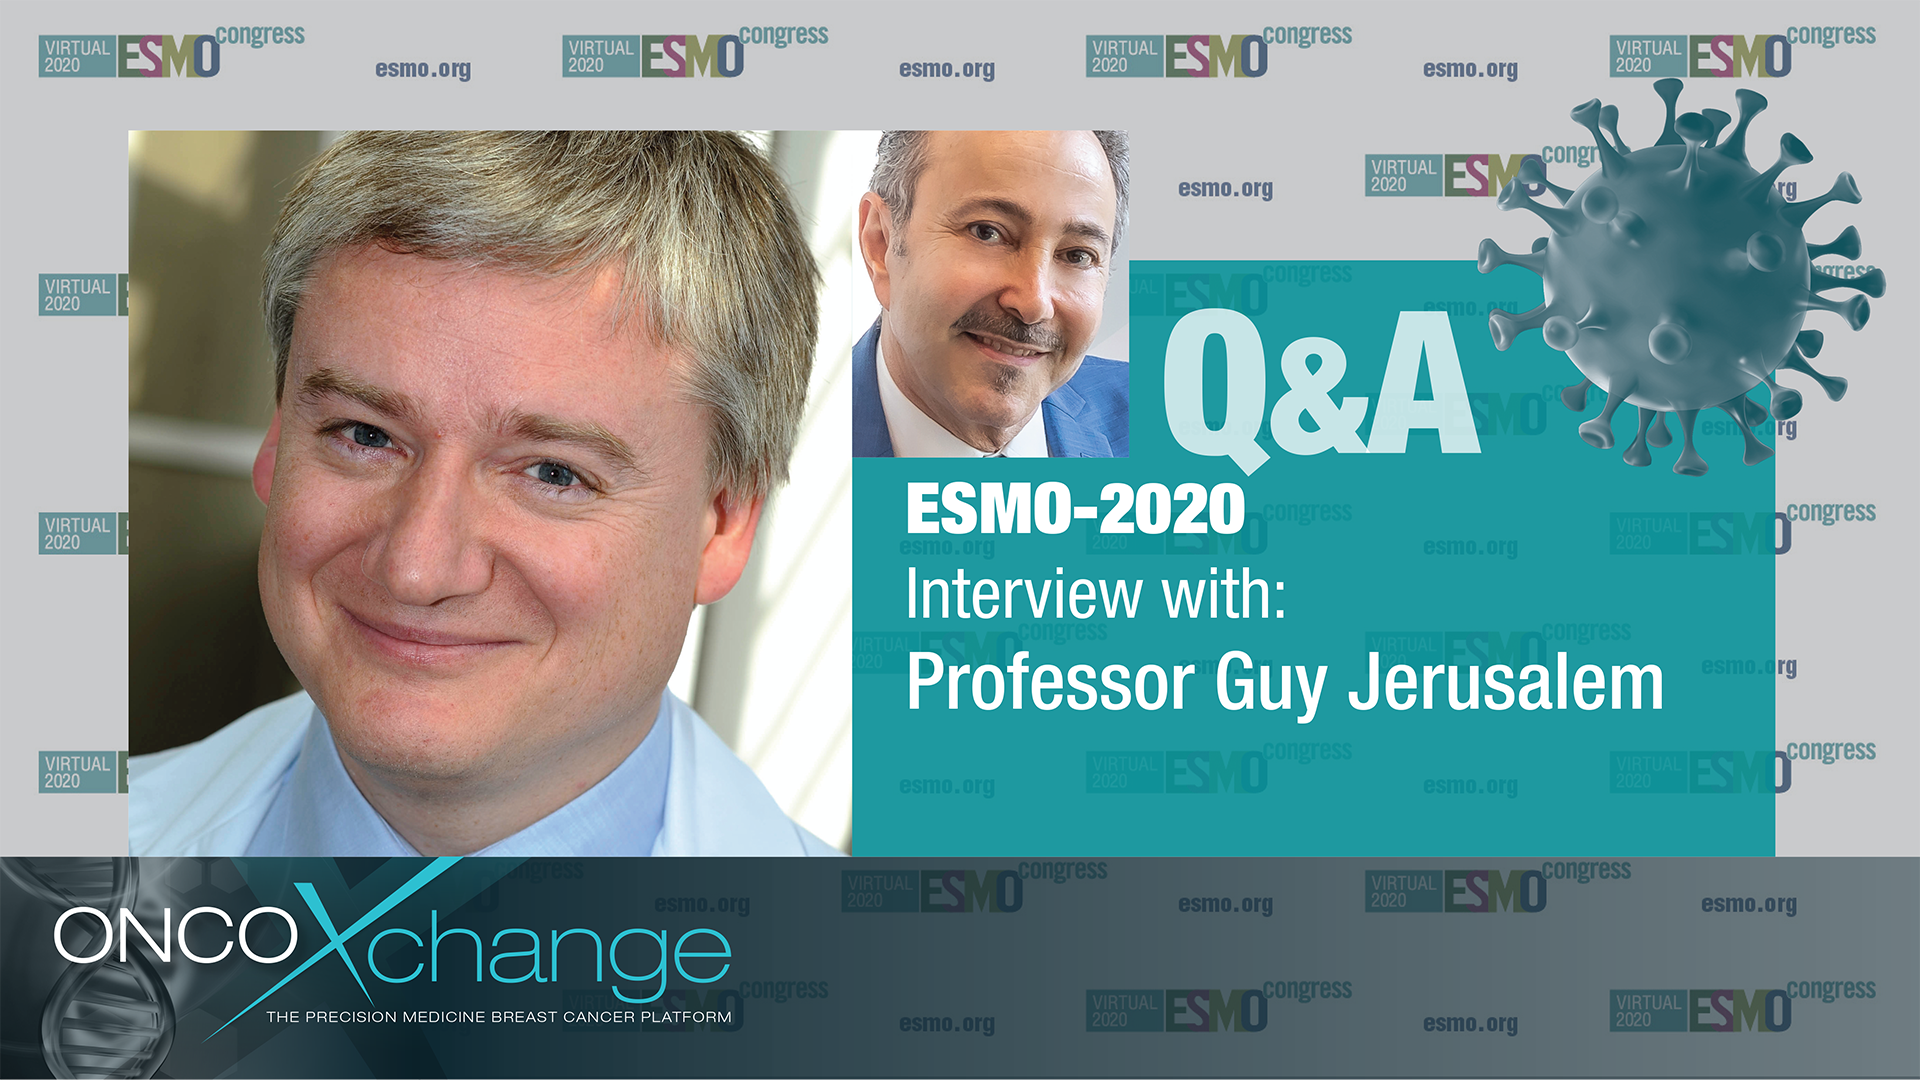 ESMO-2020 Q&A with Professor Guy Jerusalem on Expected medium and long-term impact of the COVID-19 outbreak in Oncology